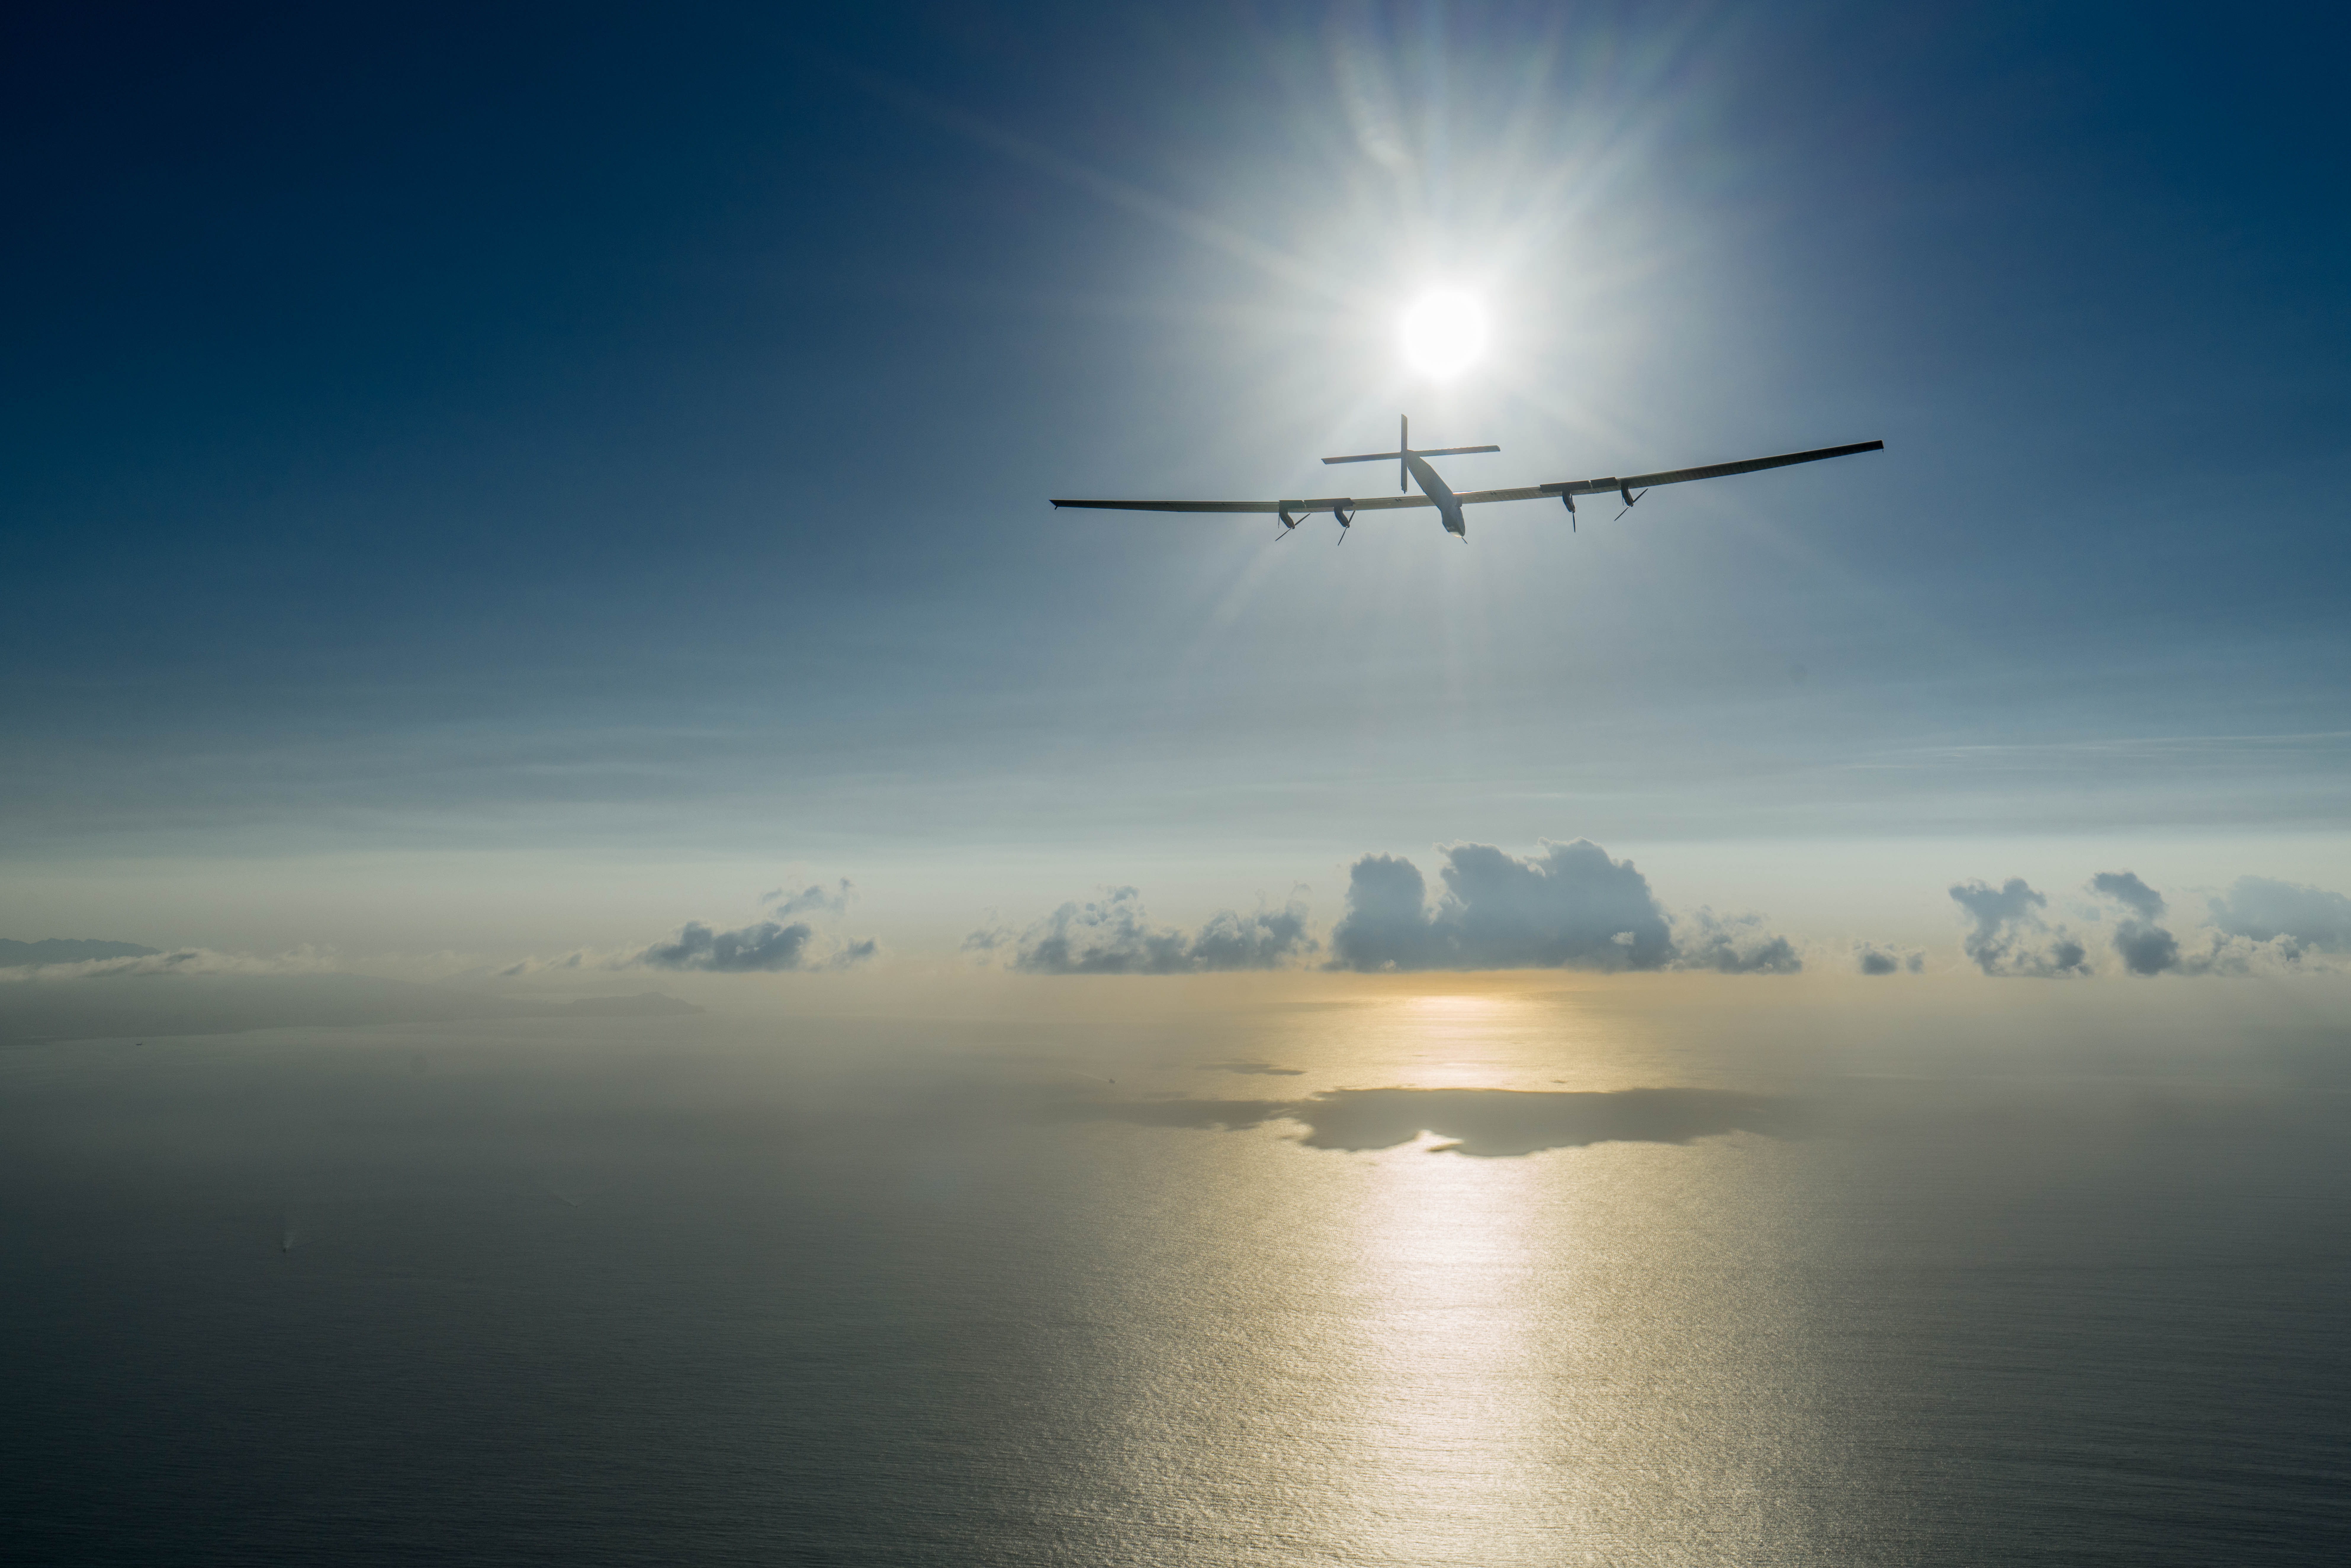 Sun-Powered Plane Will Resume Its Round-The-World Flight In April